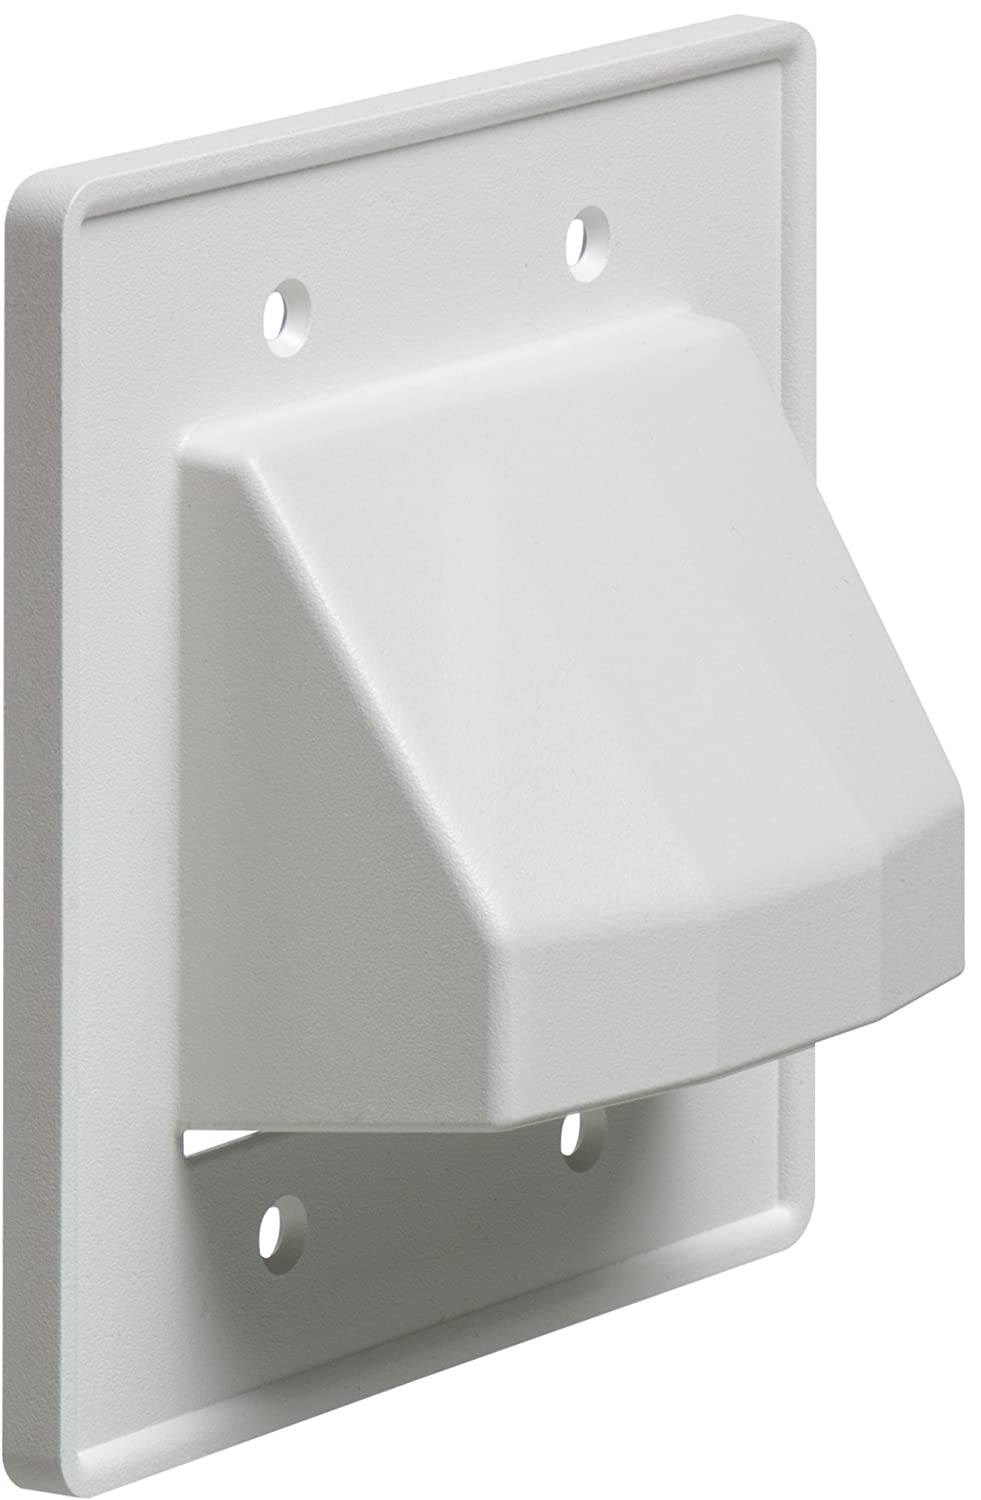 Amazon.com Arlington CE2-1 Recessed Low Voltage Cable Plate 2-Gang White 1-Pack Home Improvement  sc 1 st  Amazon.com : low voltage wiring tools - yogabreezes.com